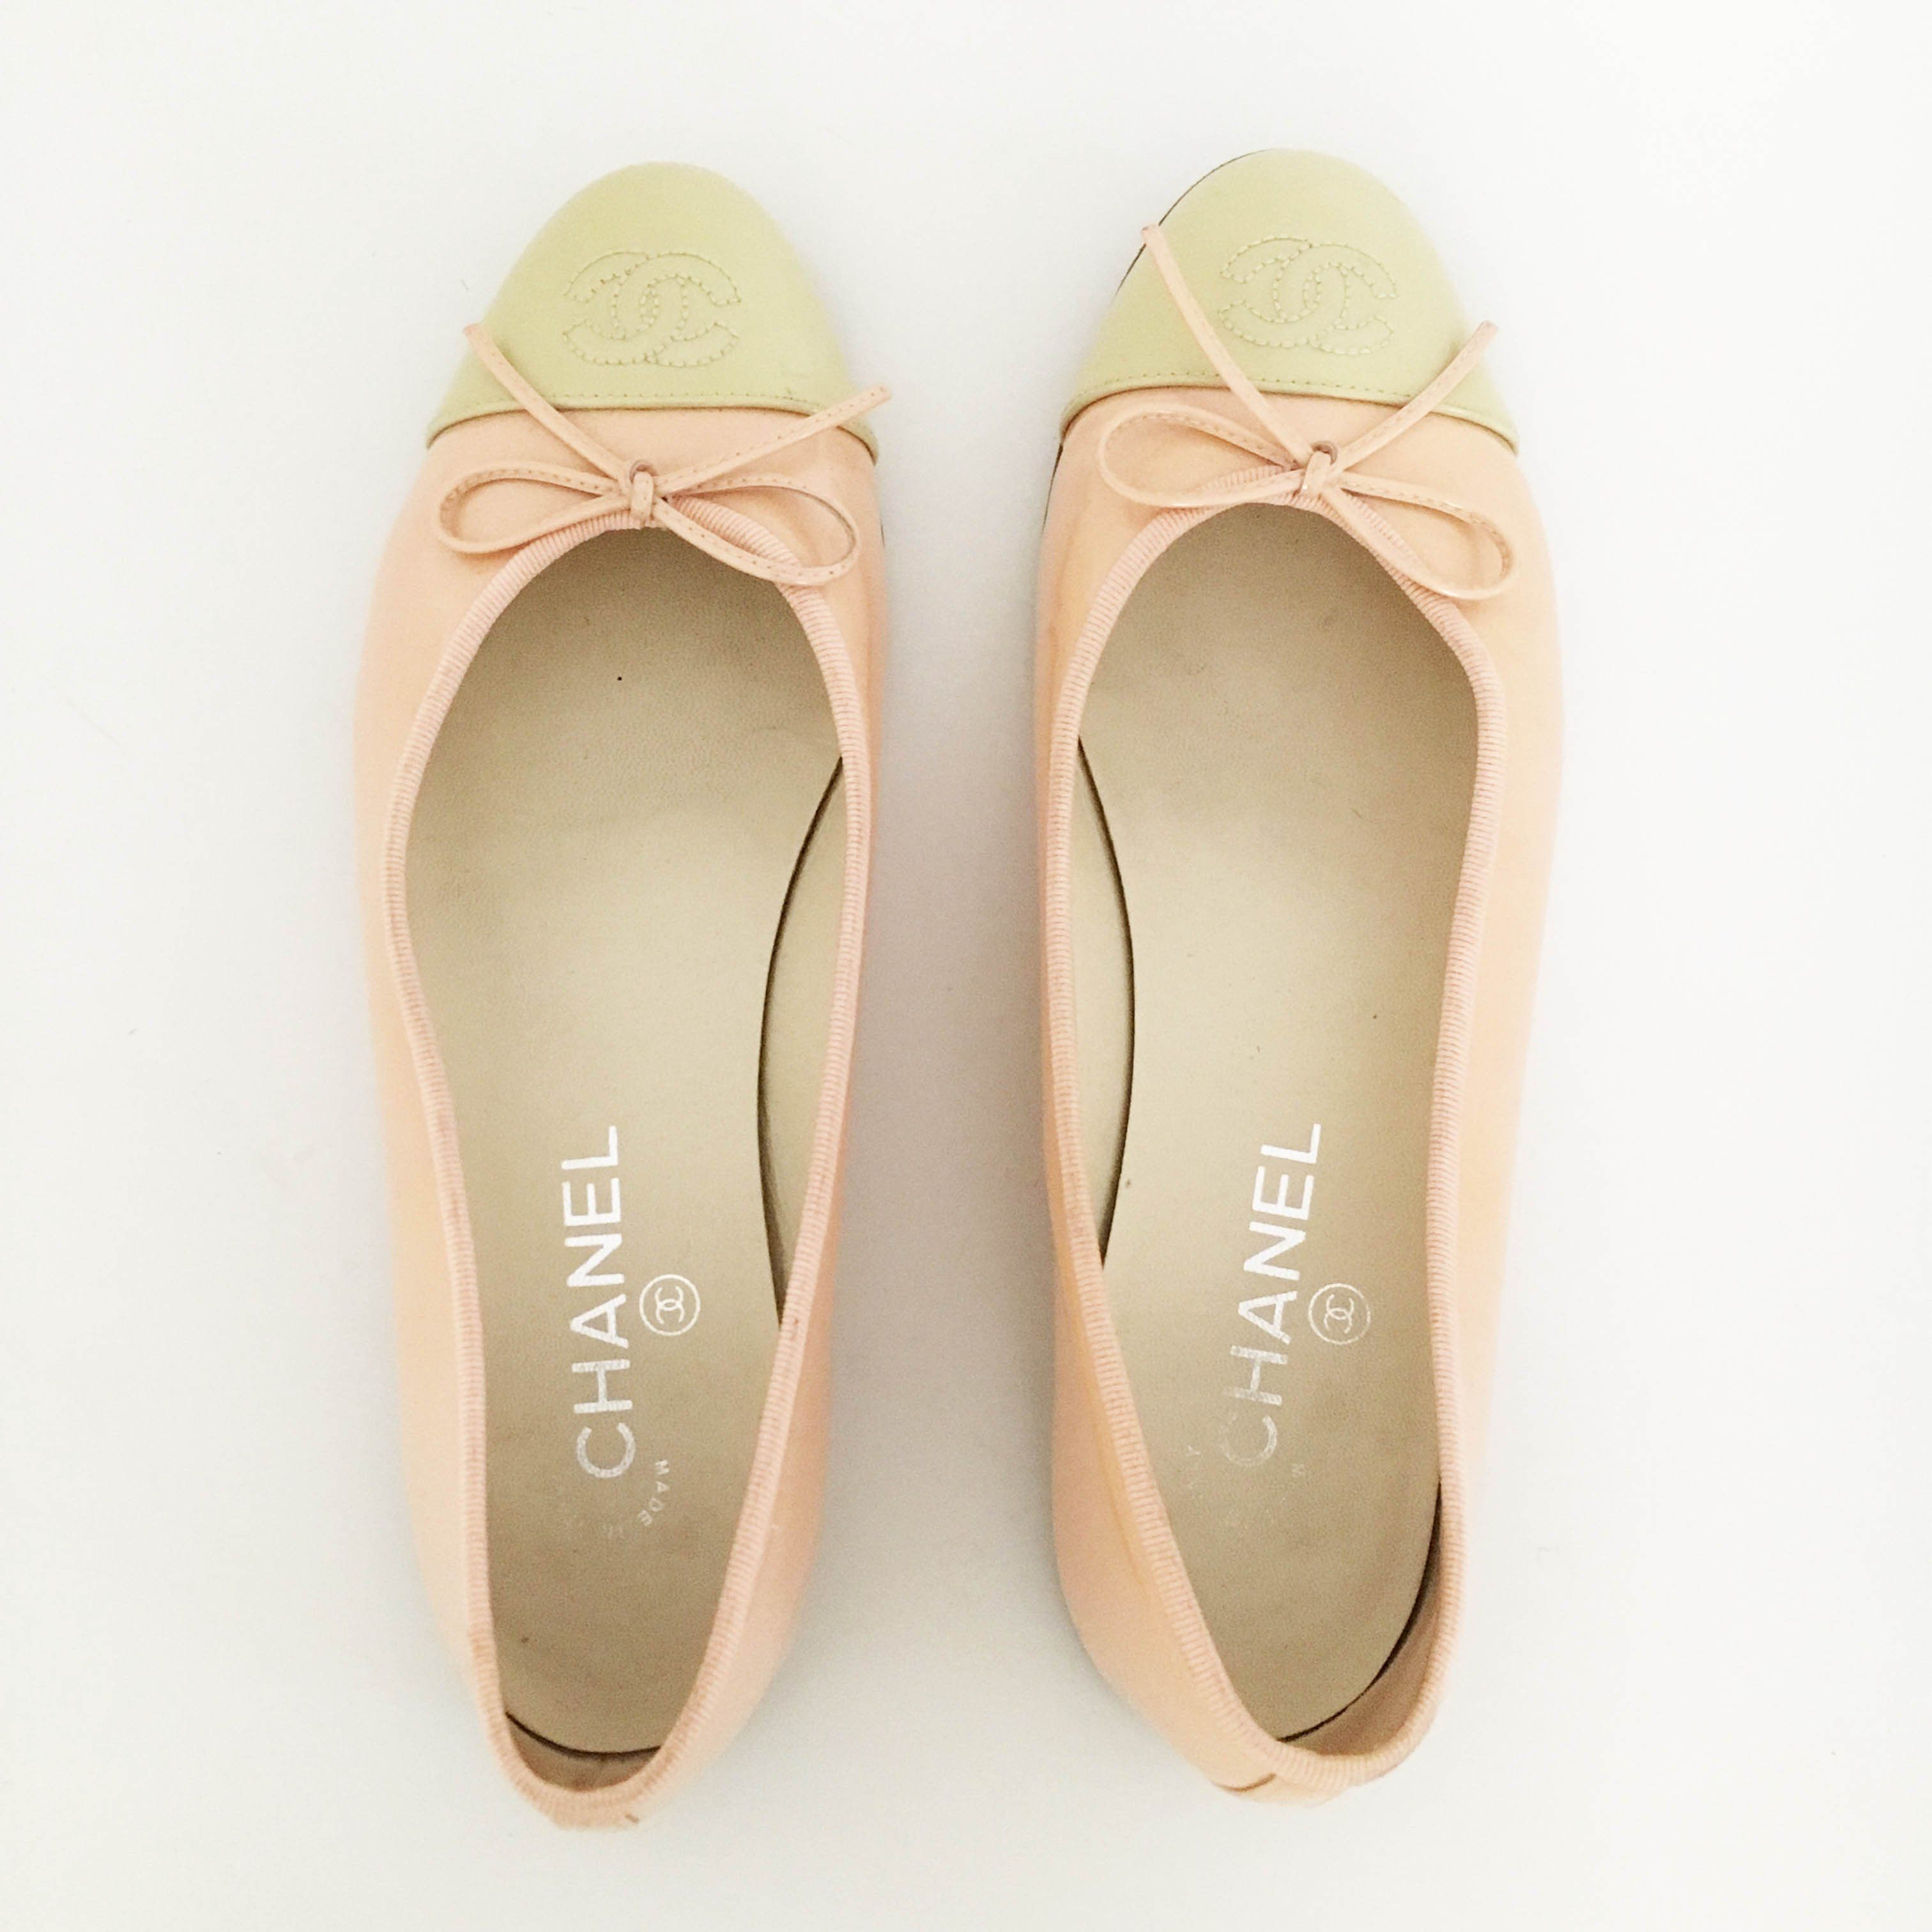 Chanel Ballerina in Peach and Beige Patent Leather